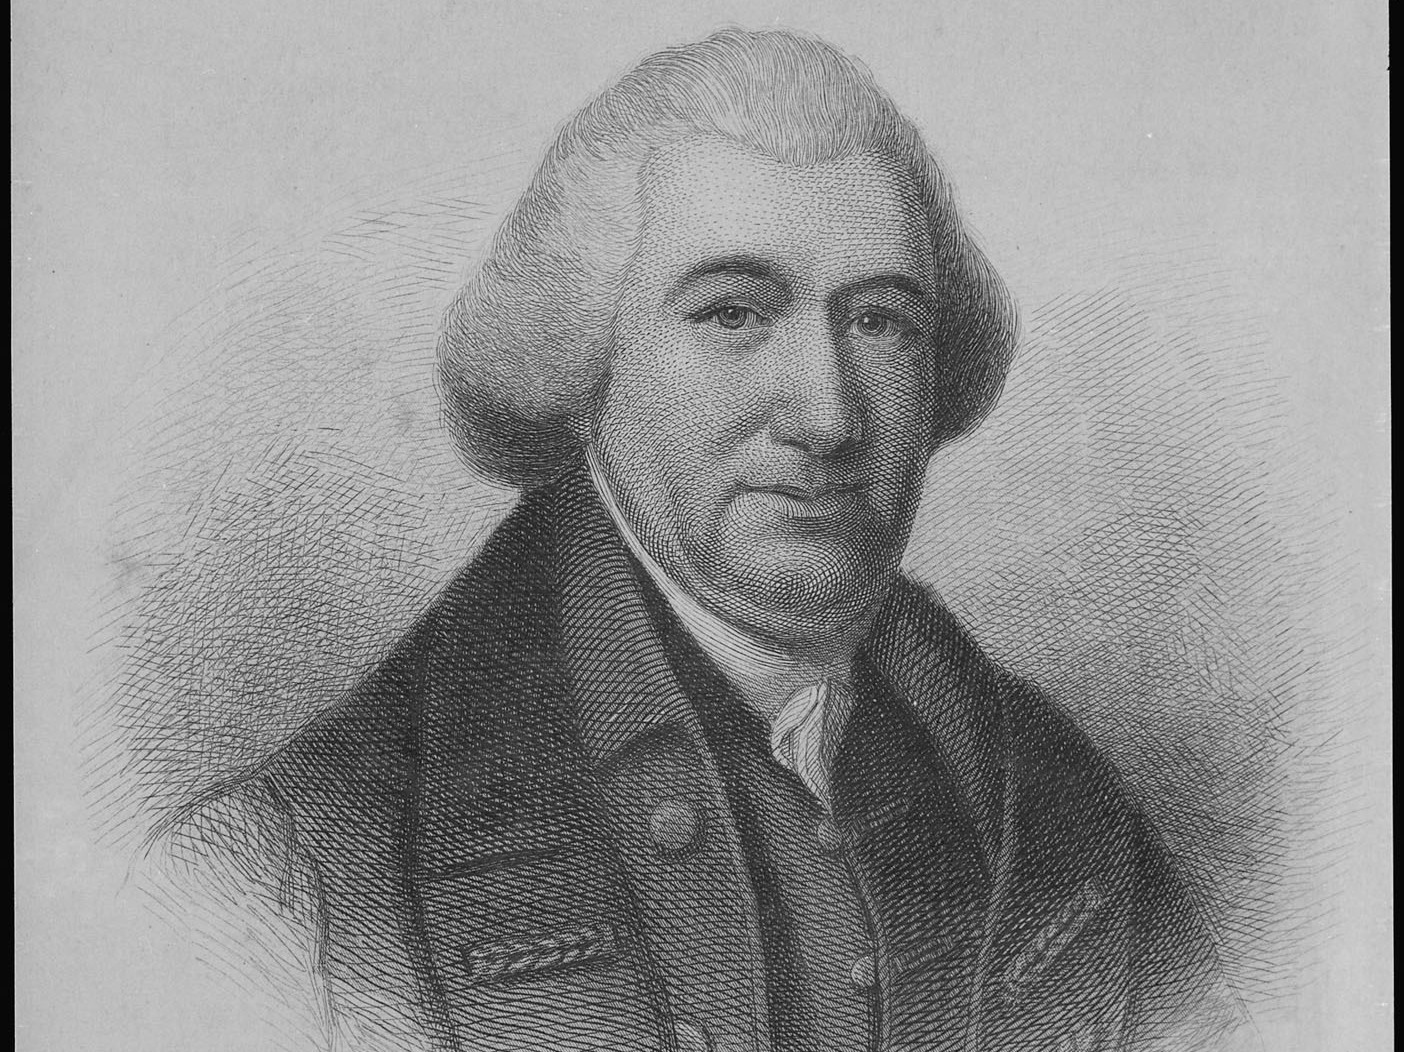 George Washington Was Not The First President Of The United States It Was John Hanson